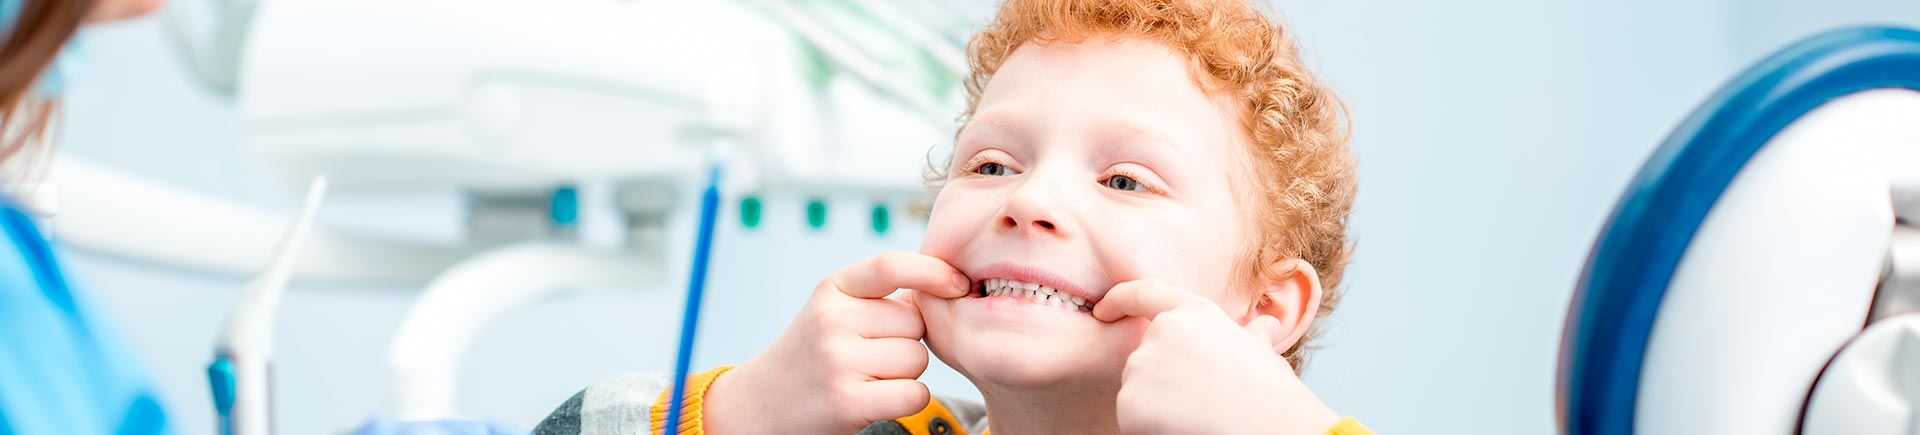 Little red-haired boy in a dentist treatment room showing his teeth.